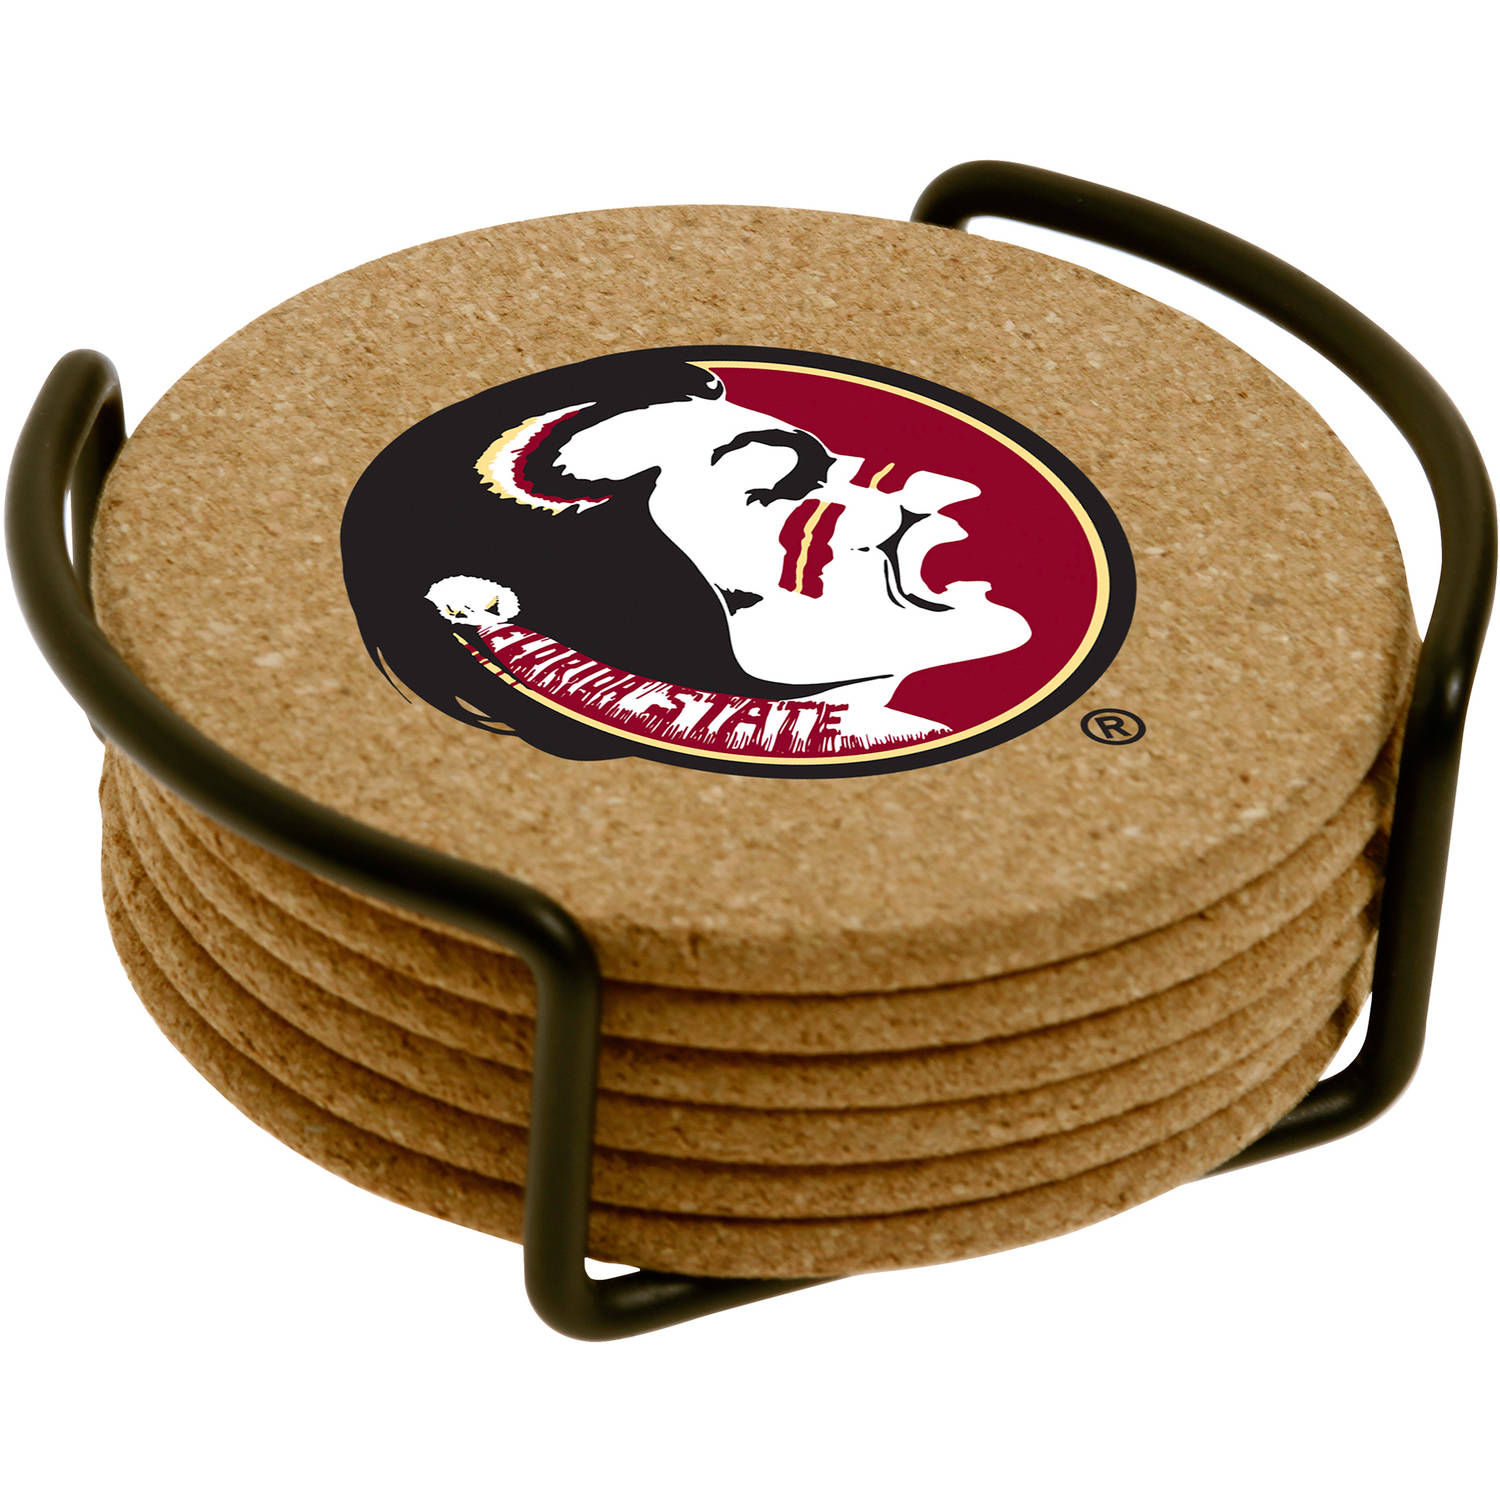 Czoc Housewares Set of Six Cork Coasters with Holder Included, Florida State University